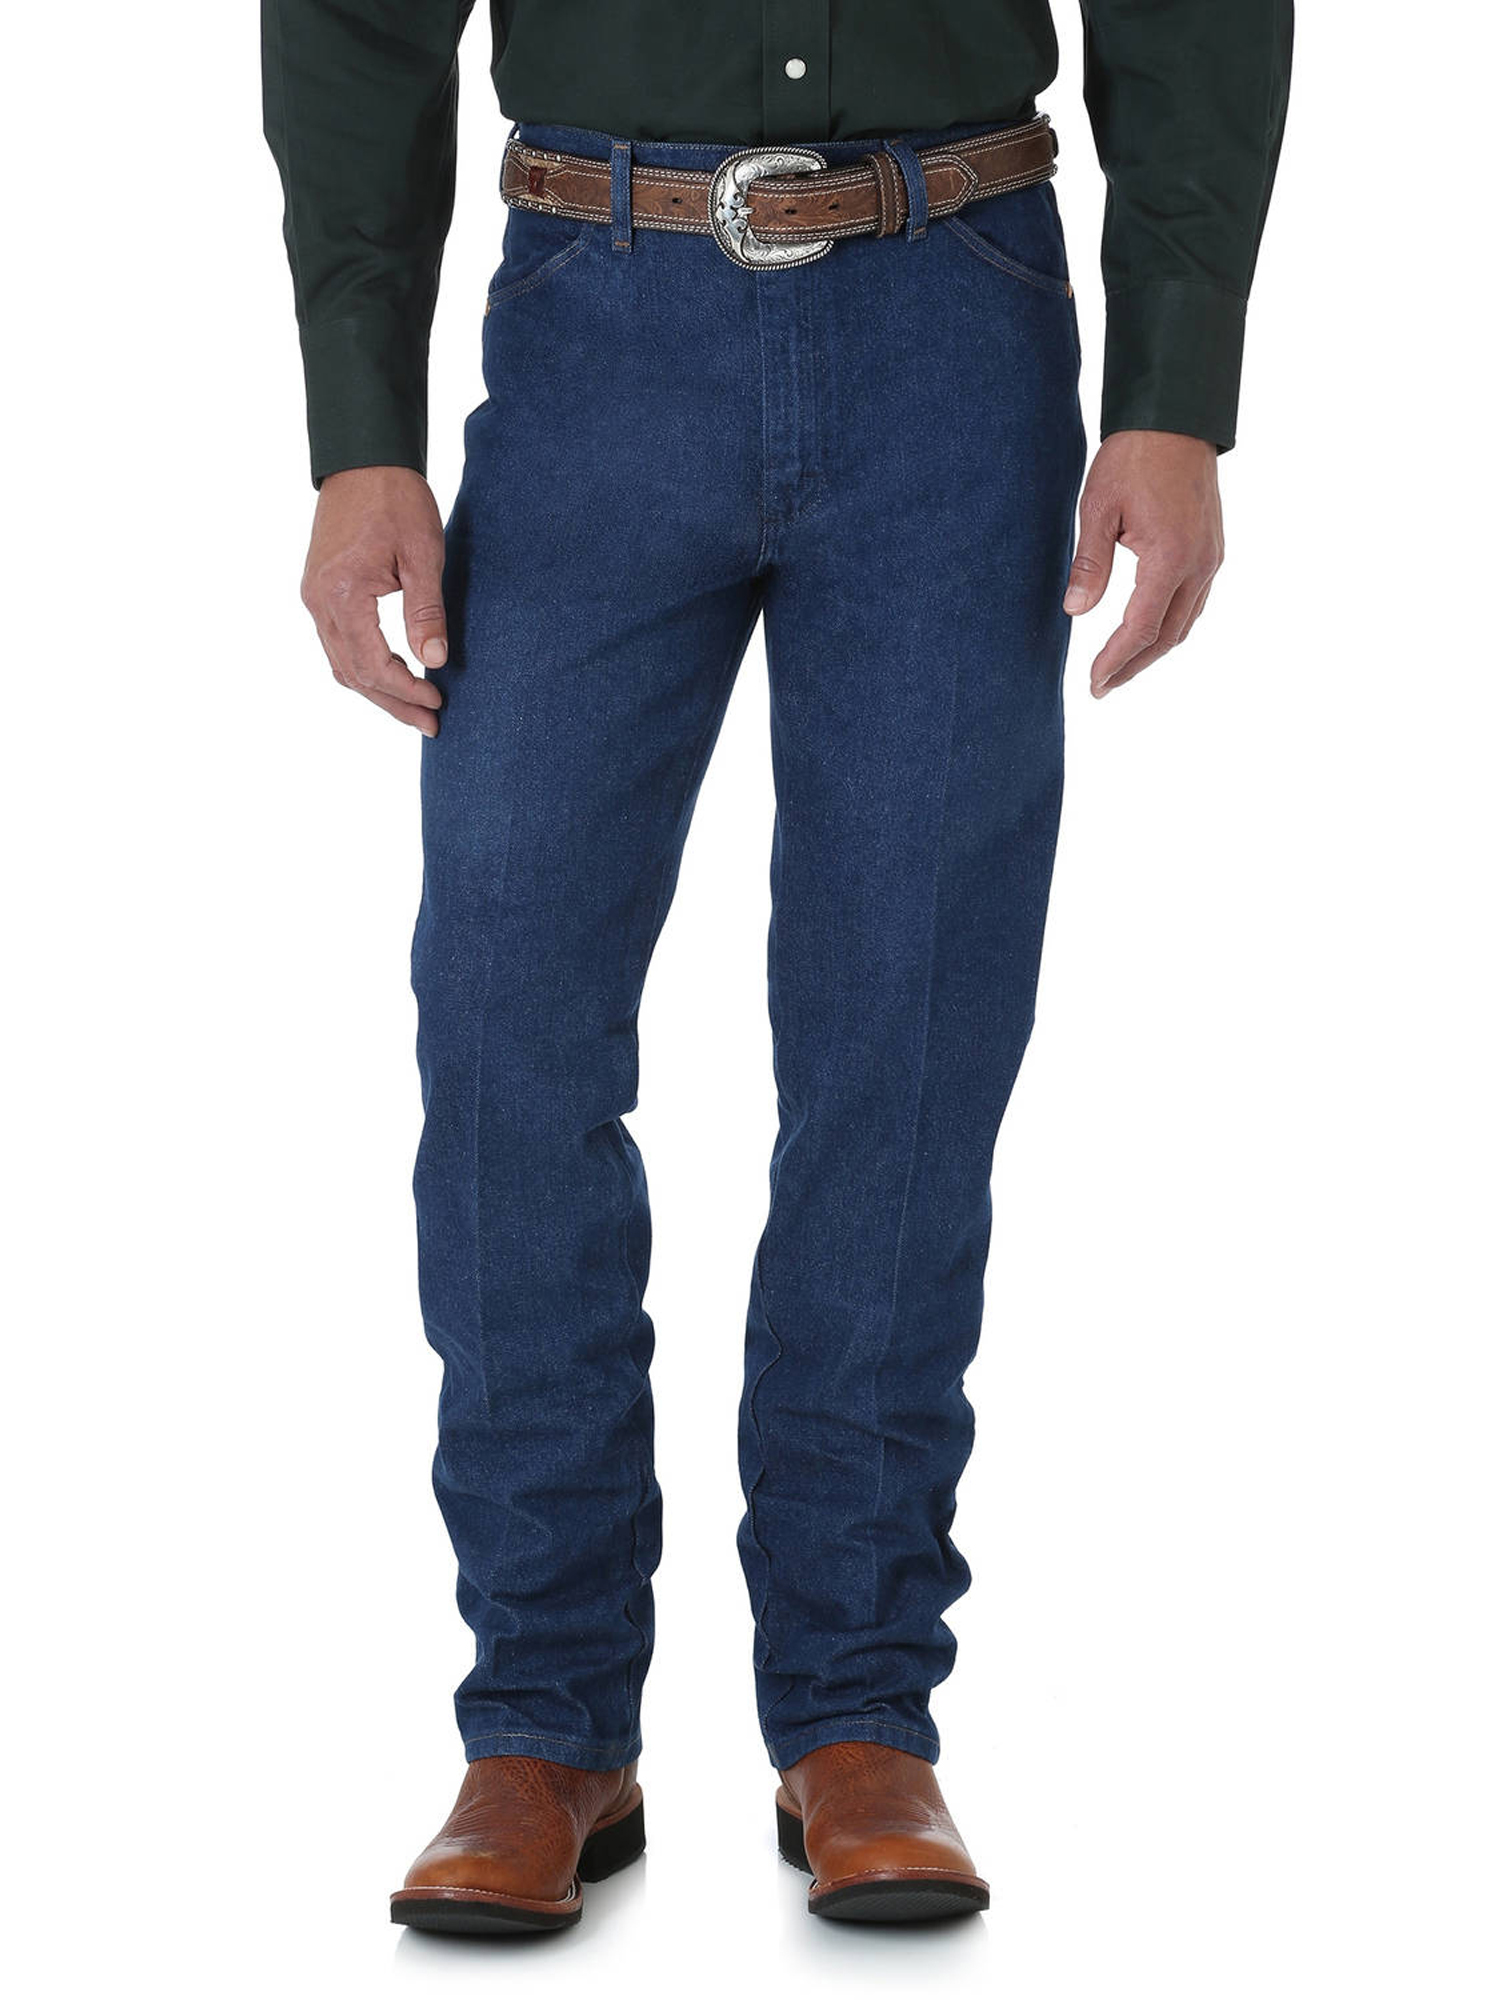 Mens WRANGLER Jeans 936DSD Slim Fit Cowboy Cut Fit Over Boots Dark Stone NEW